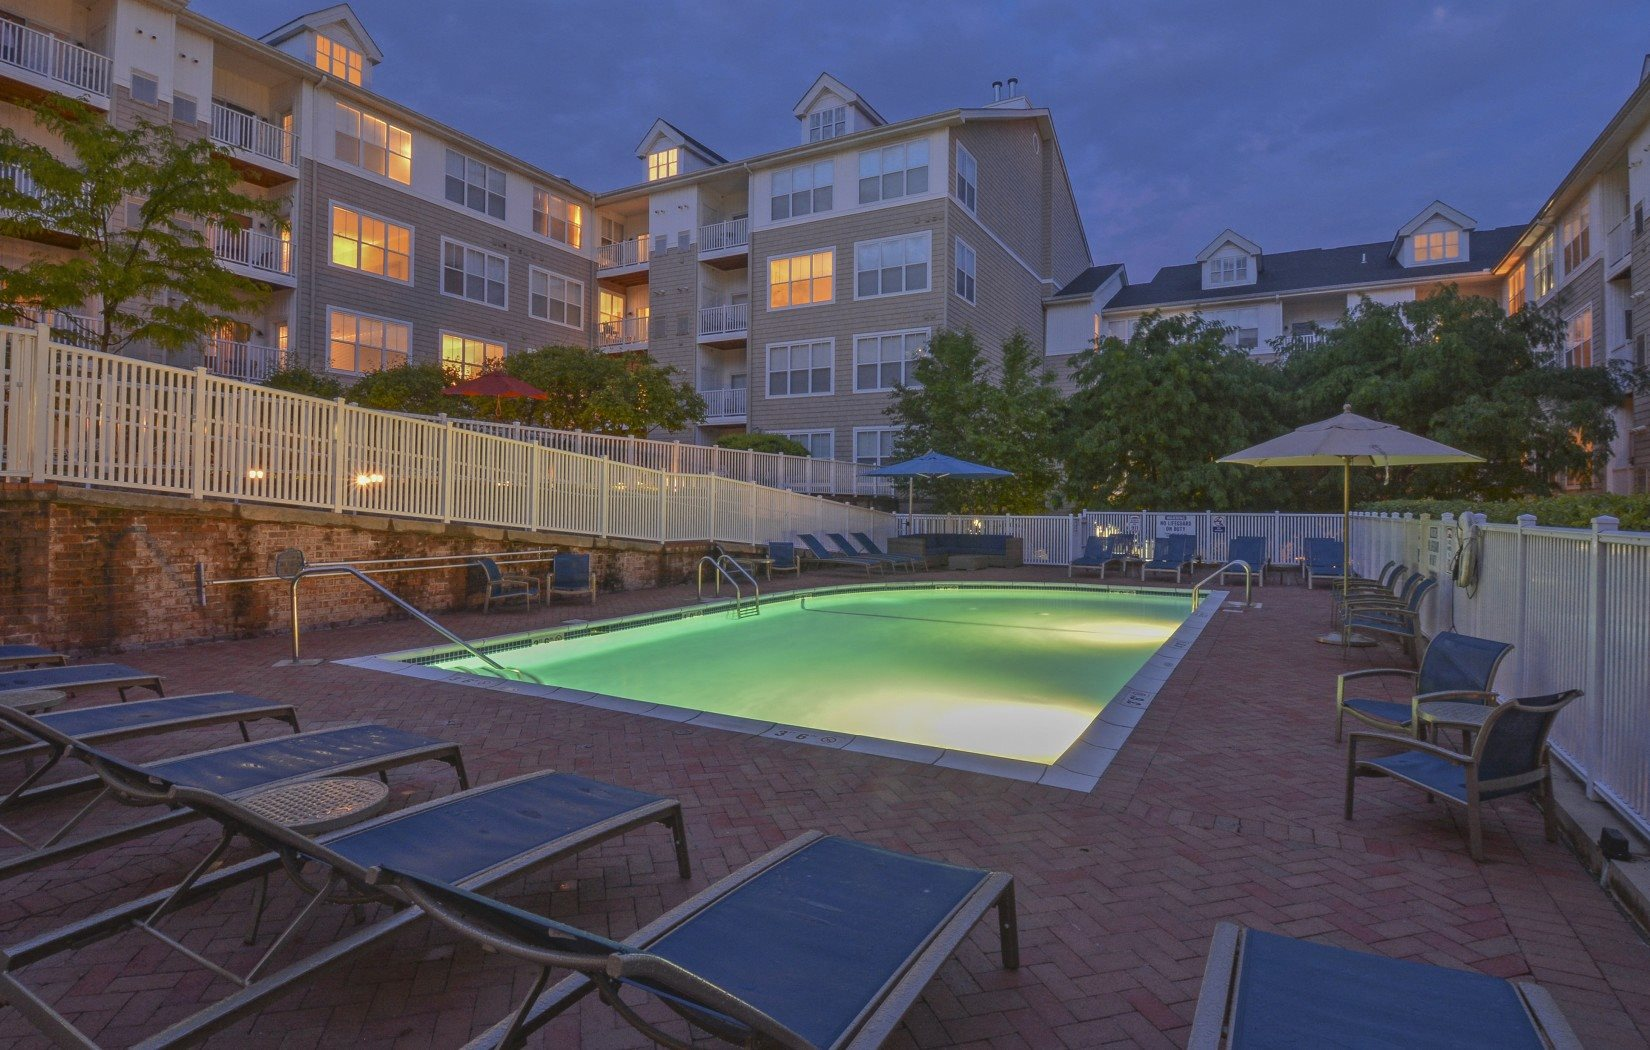 outdoor swimming pool | Glenview House Apartments Stamford CT